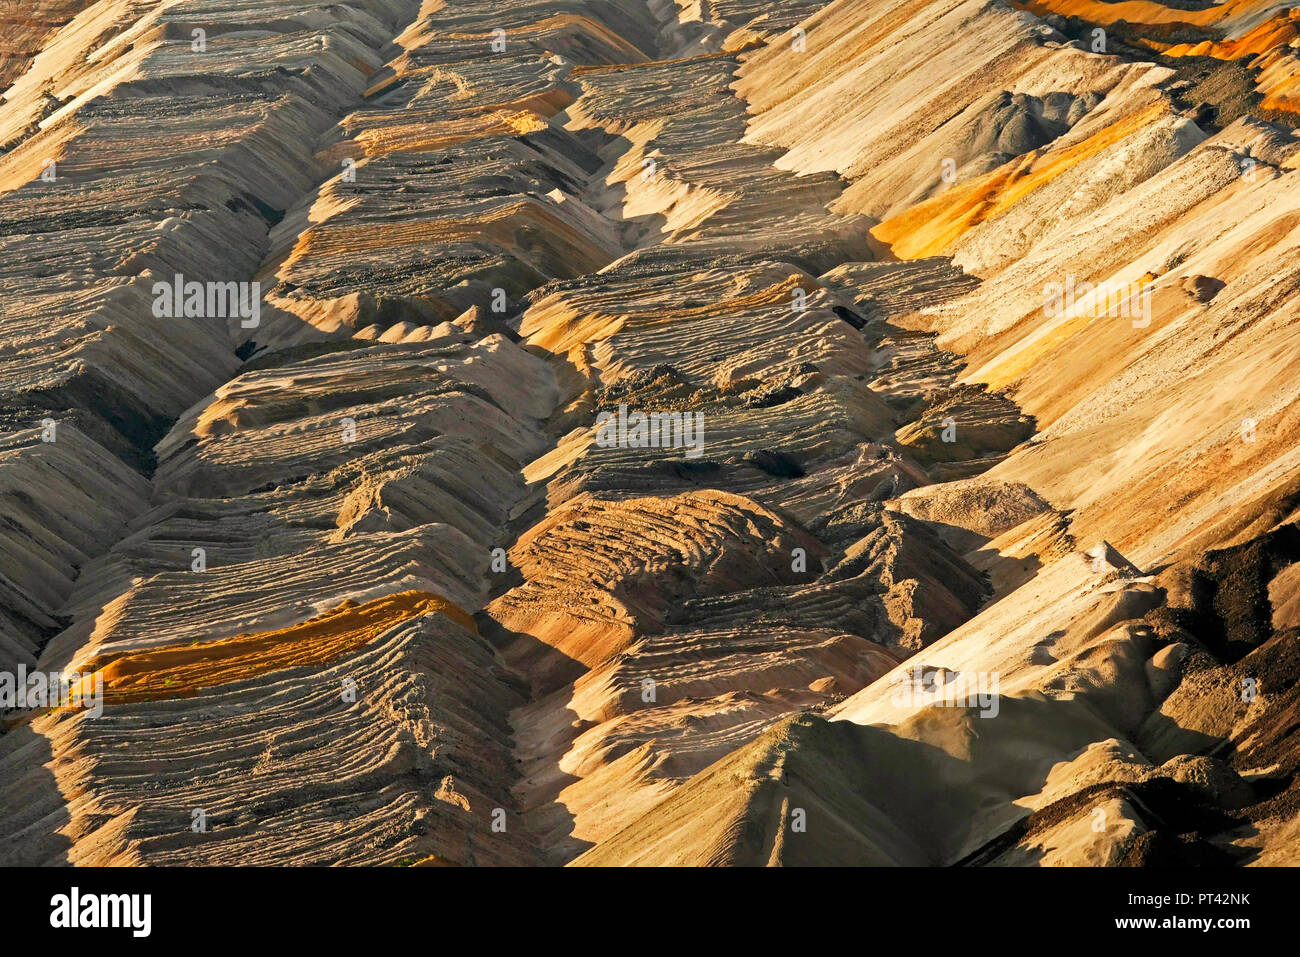 Soil layer at the soft coal opencast mining Hambach near Bergheim, Rhenish brown coal field, North Rhine-Westphalia, Germany Stock Photo